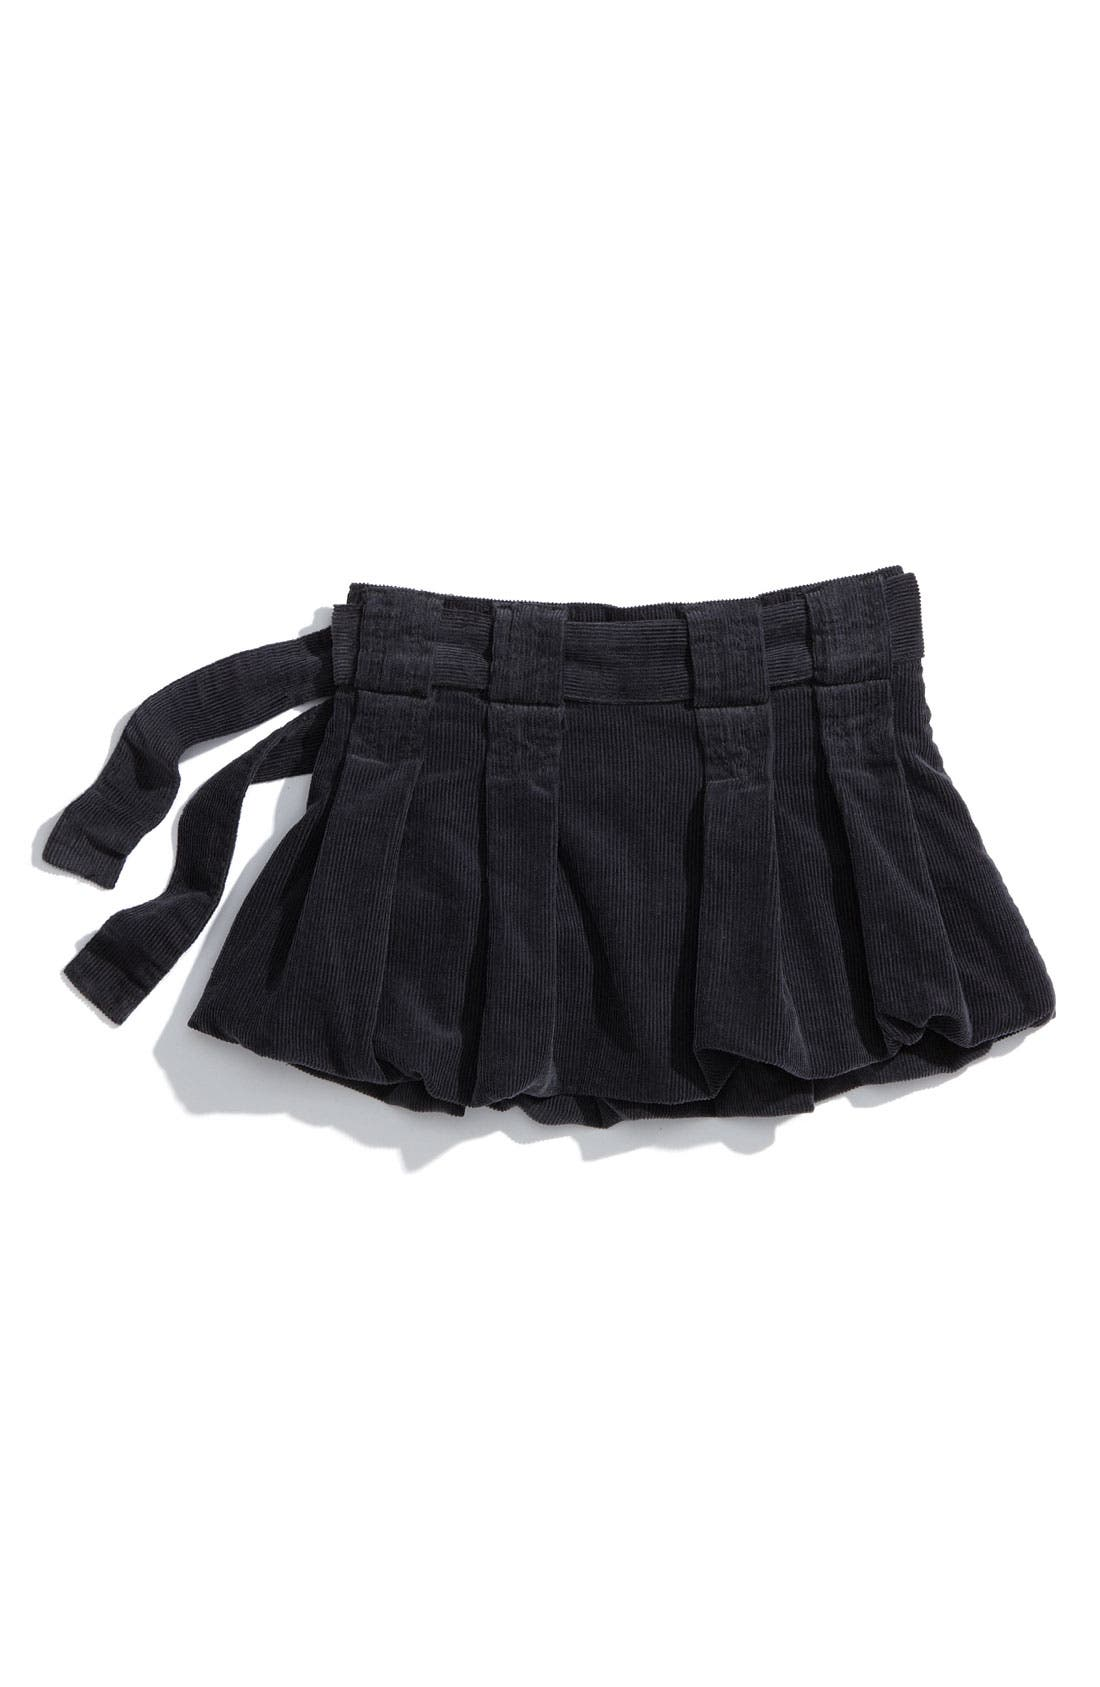 Alternate Image 1 Selected - United Colors of Benetton Kids Corduroy Skirt (Toddler)